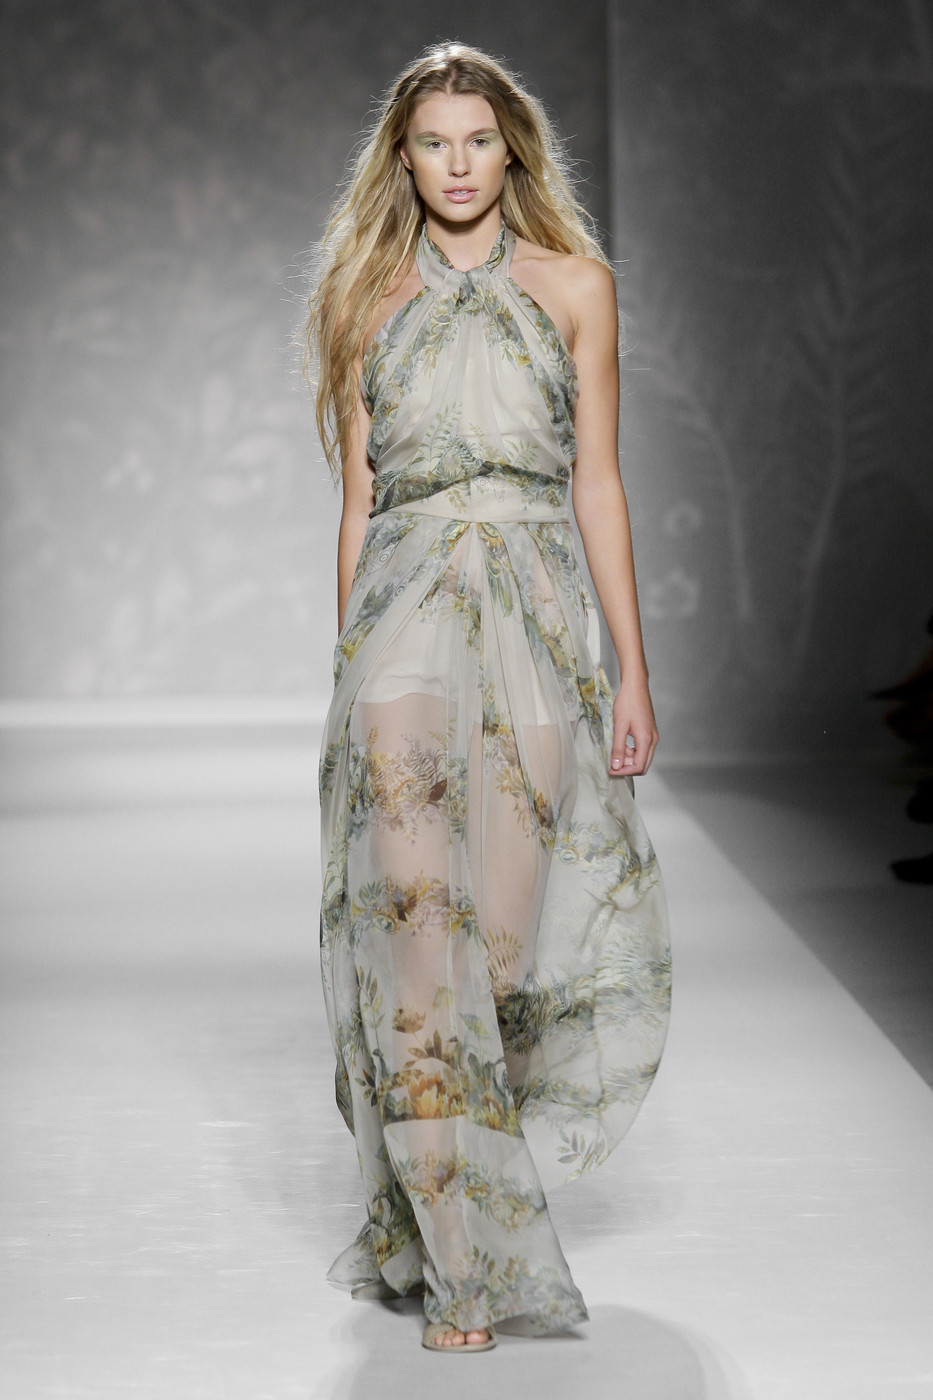 via fashioned by love | Alberta Ferretti Spring/Summer 2011 | floral trend